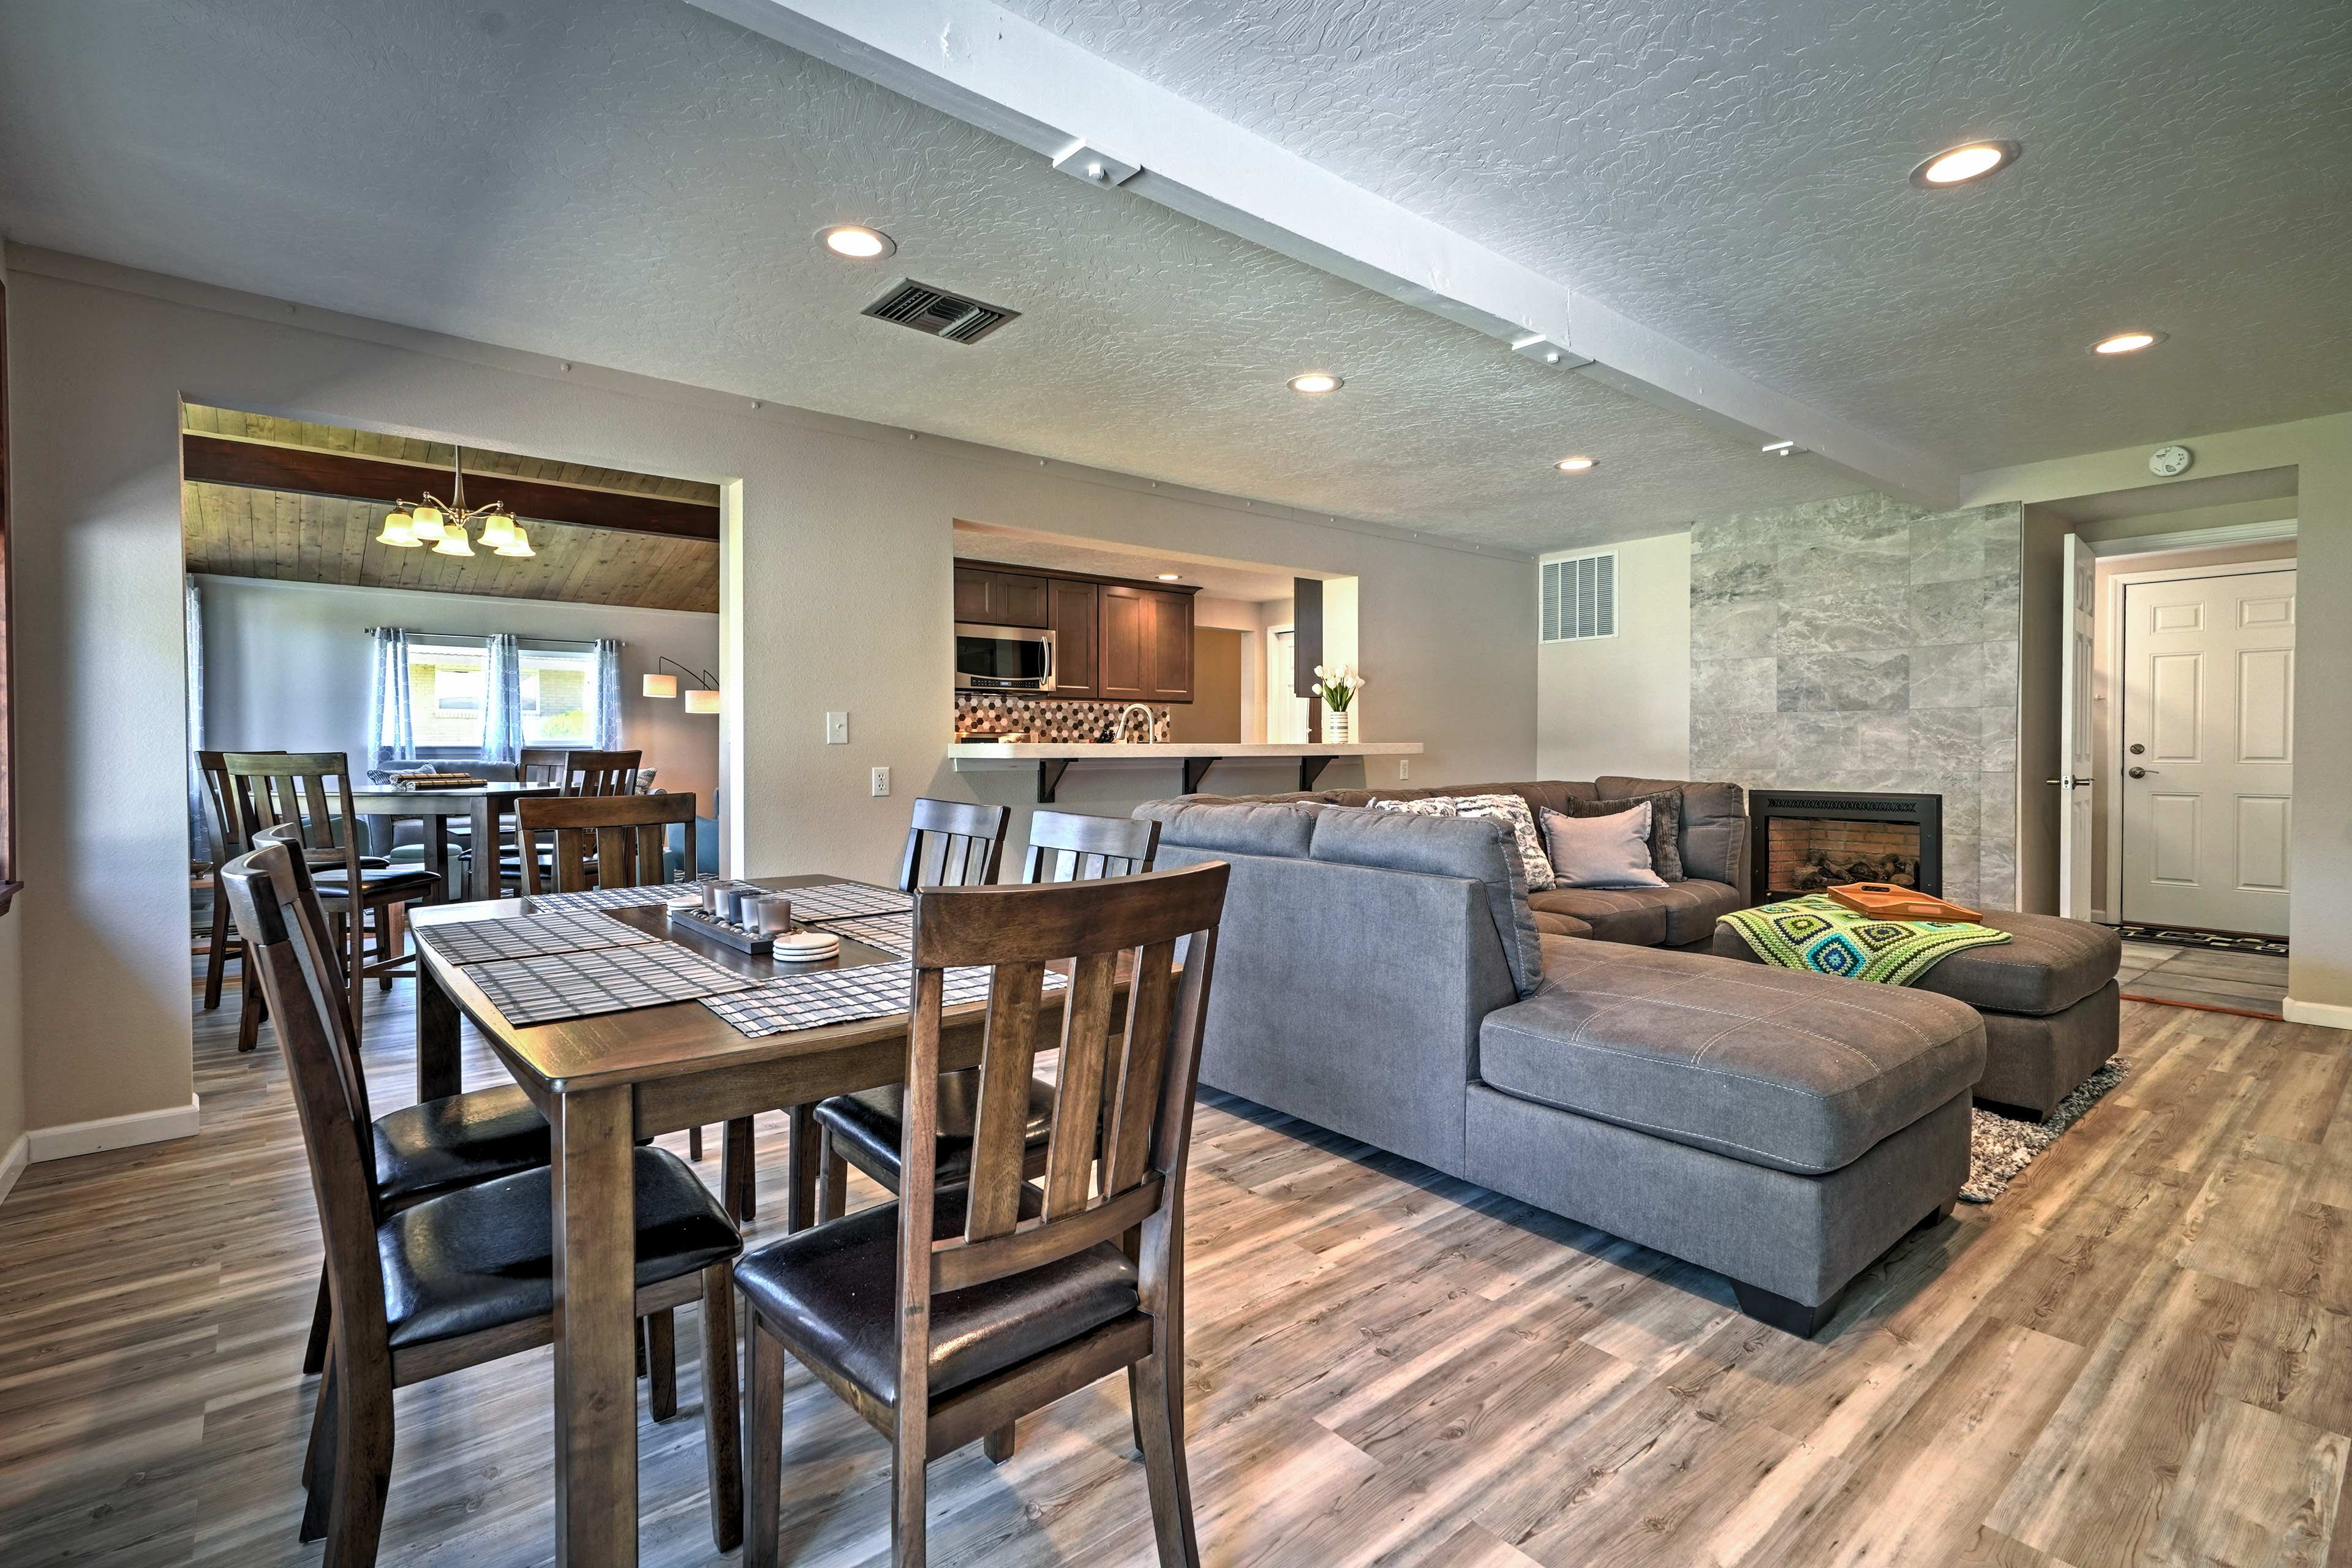 There's plenty of room for everyone in the 1,932-square-foot home.